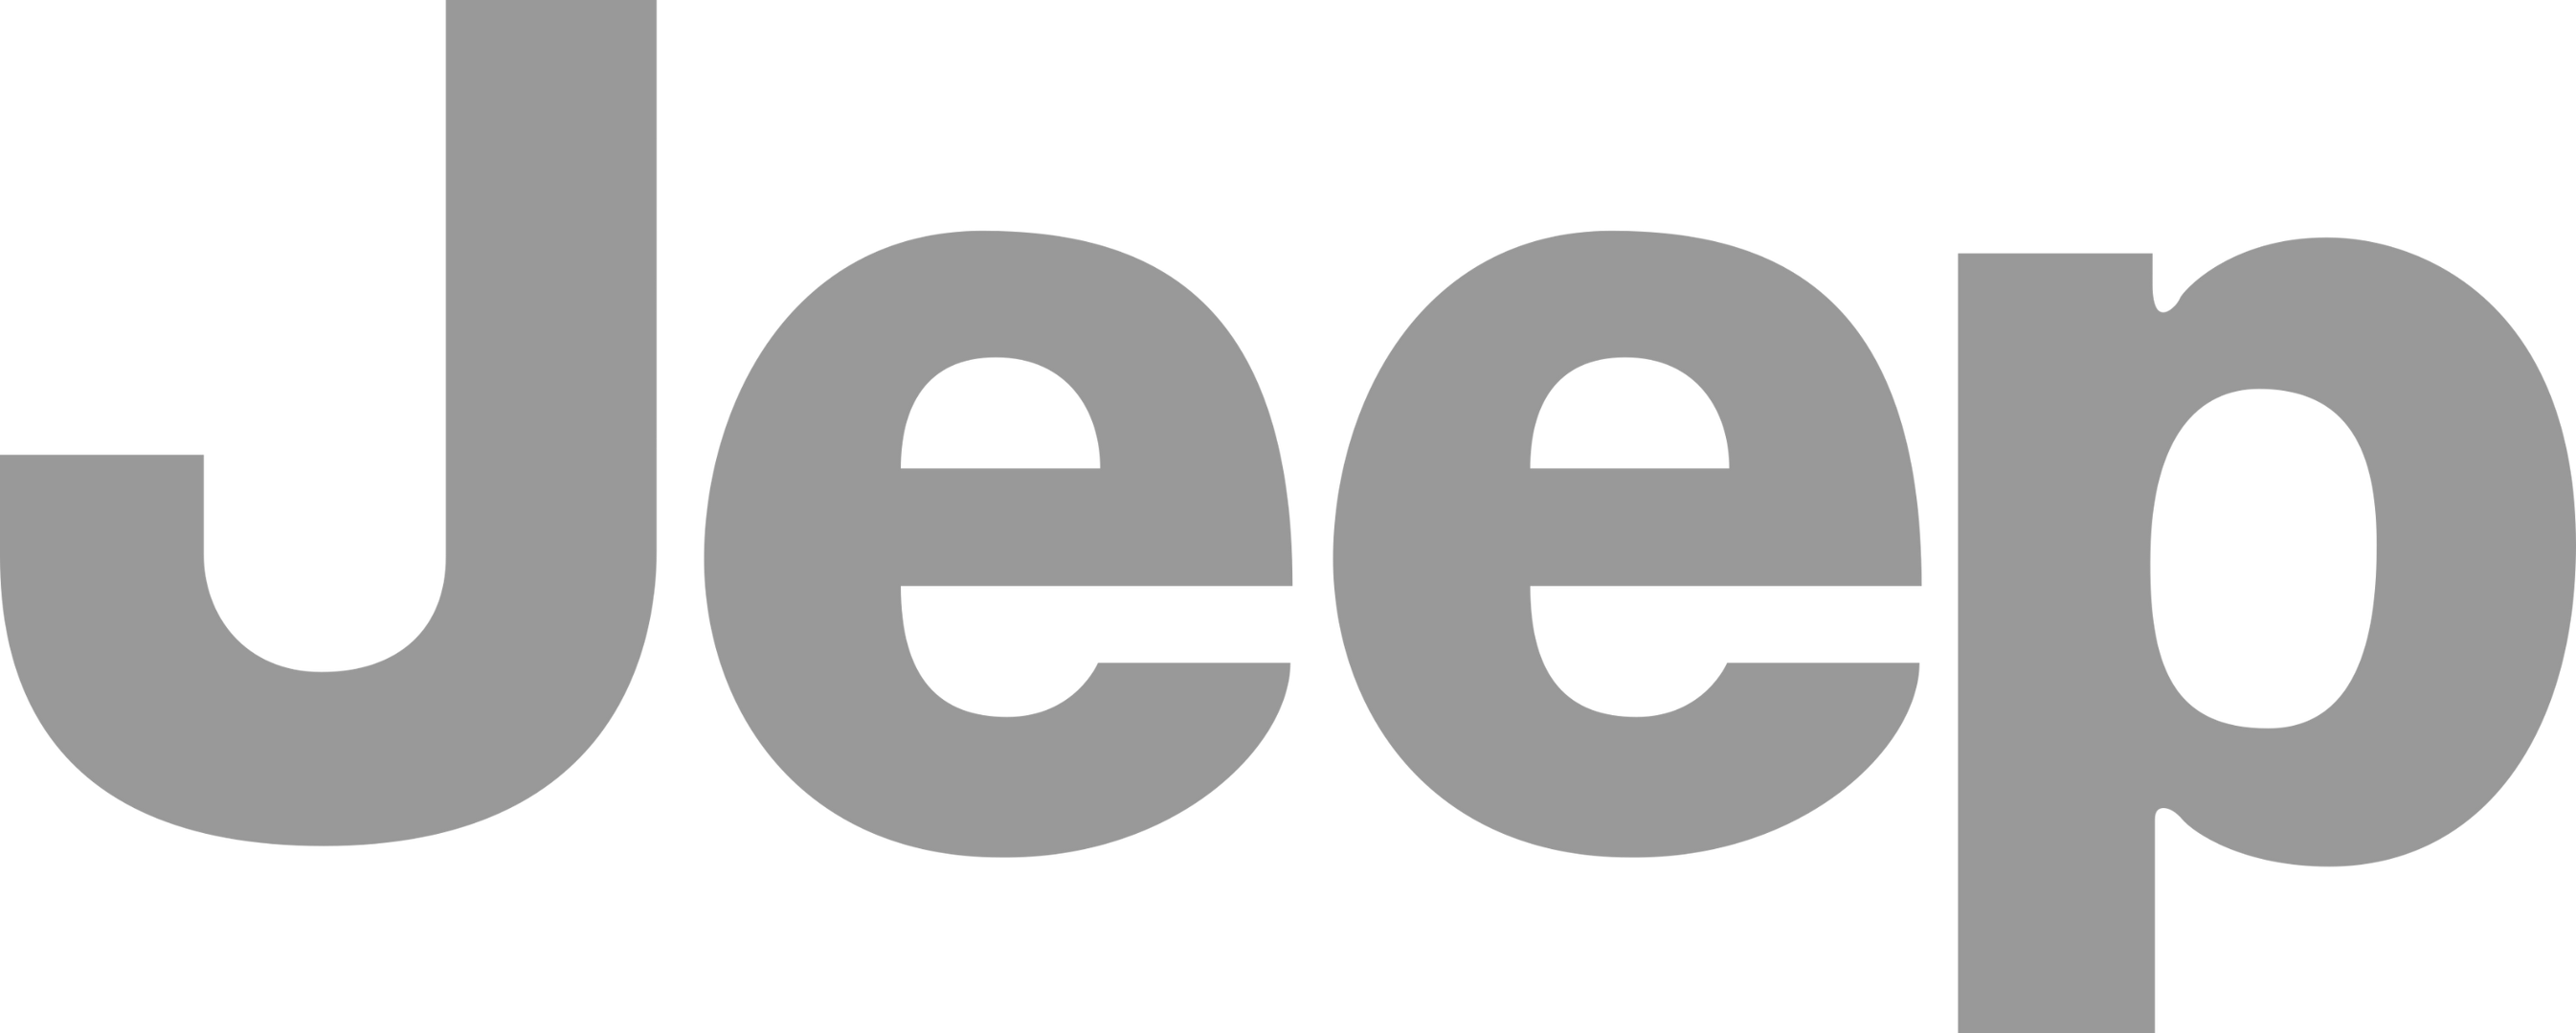 jeep-logo_edited.png